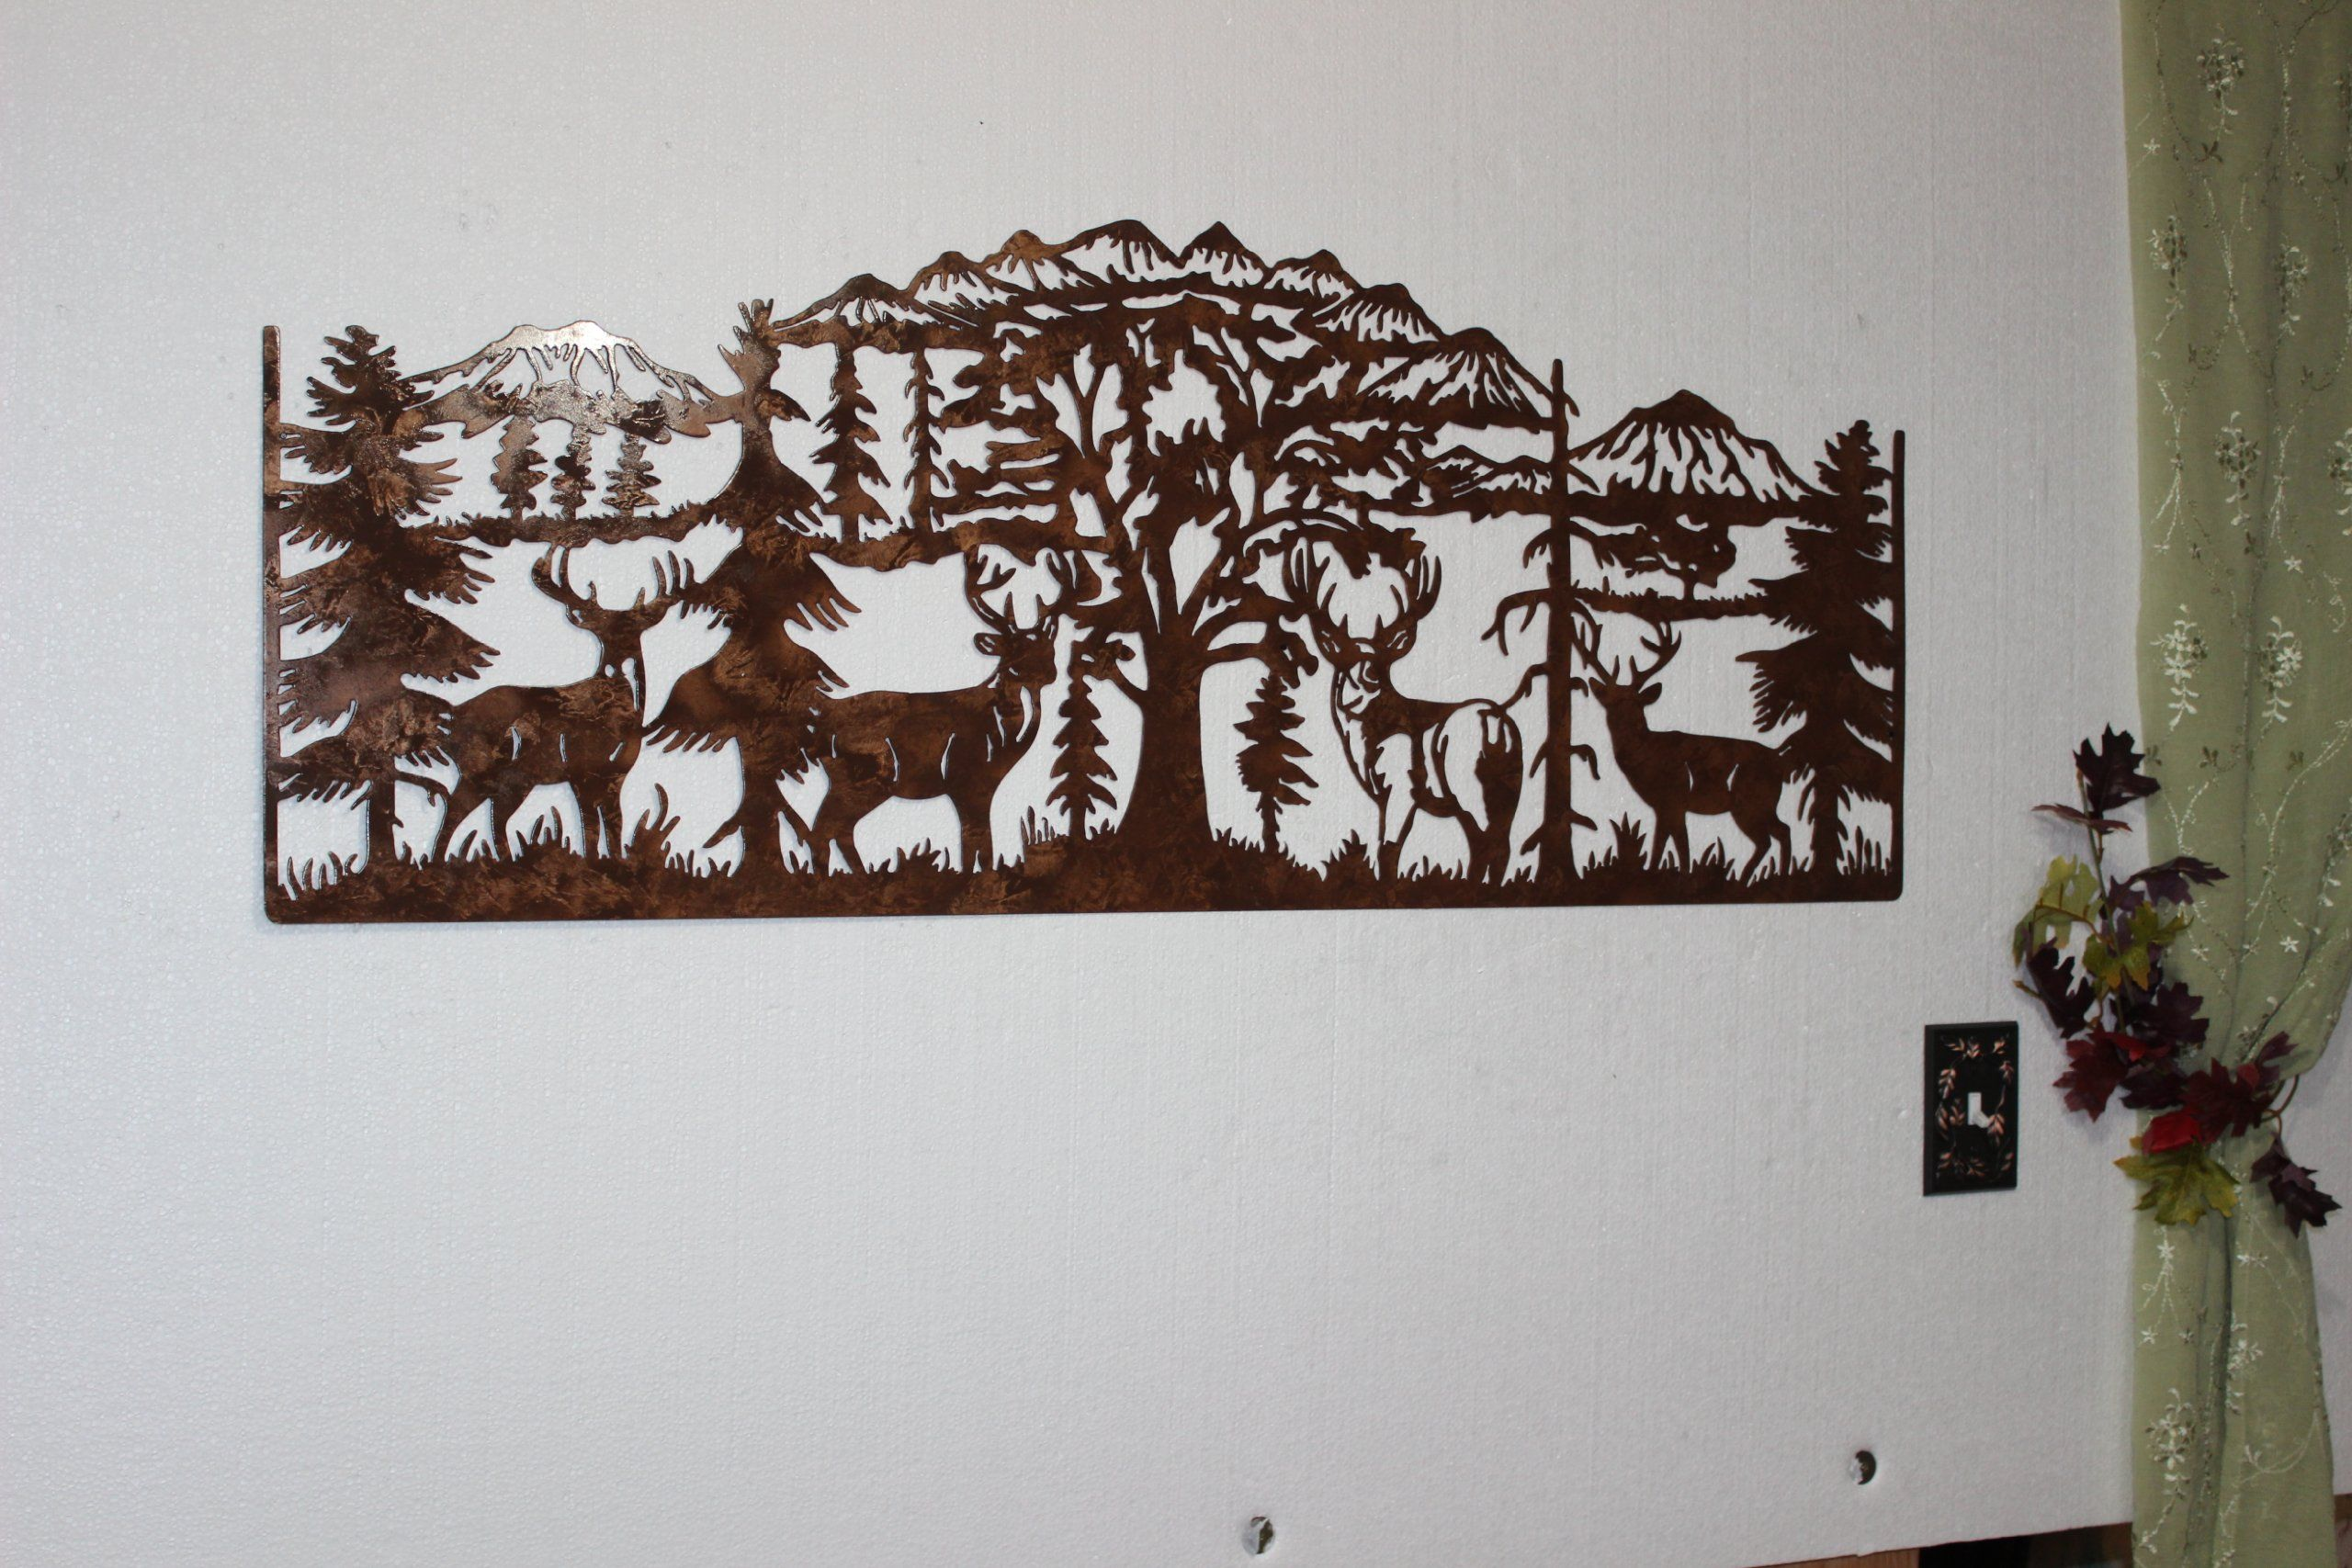 Deer and mountain scene with 4 majestic bucks large metal wall art country rustic decor